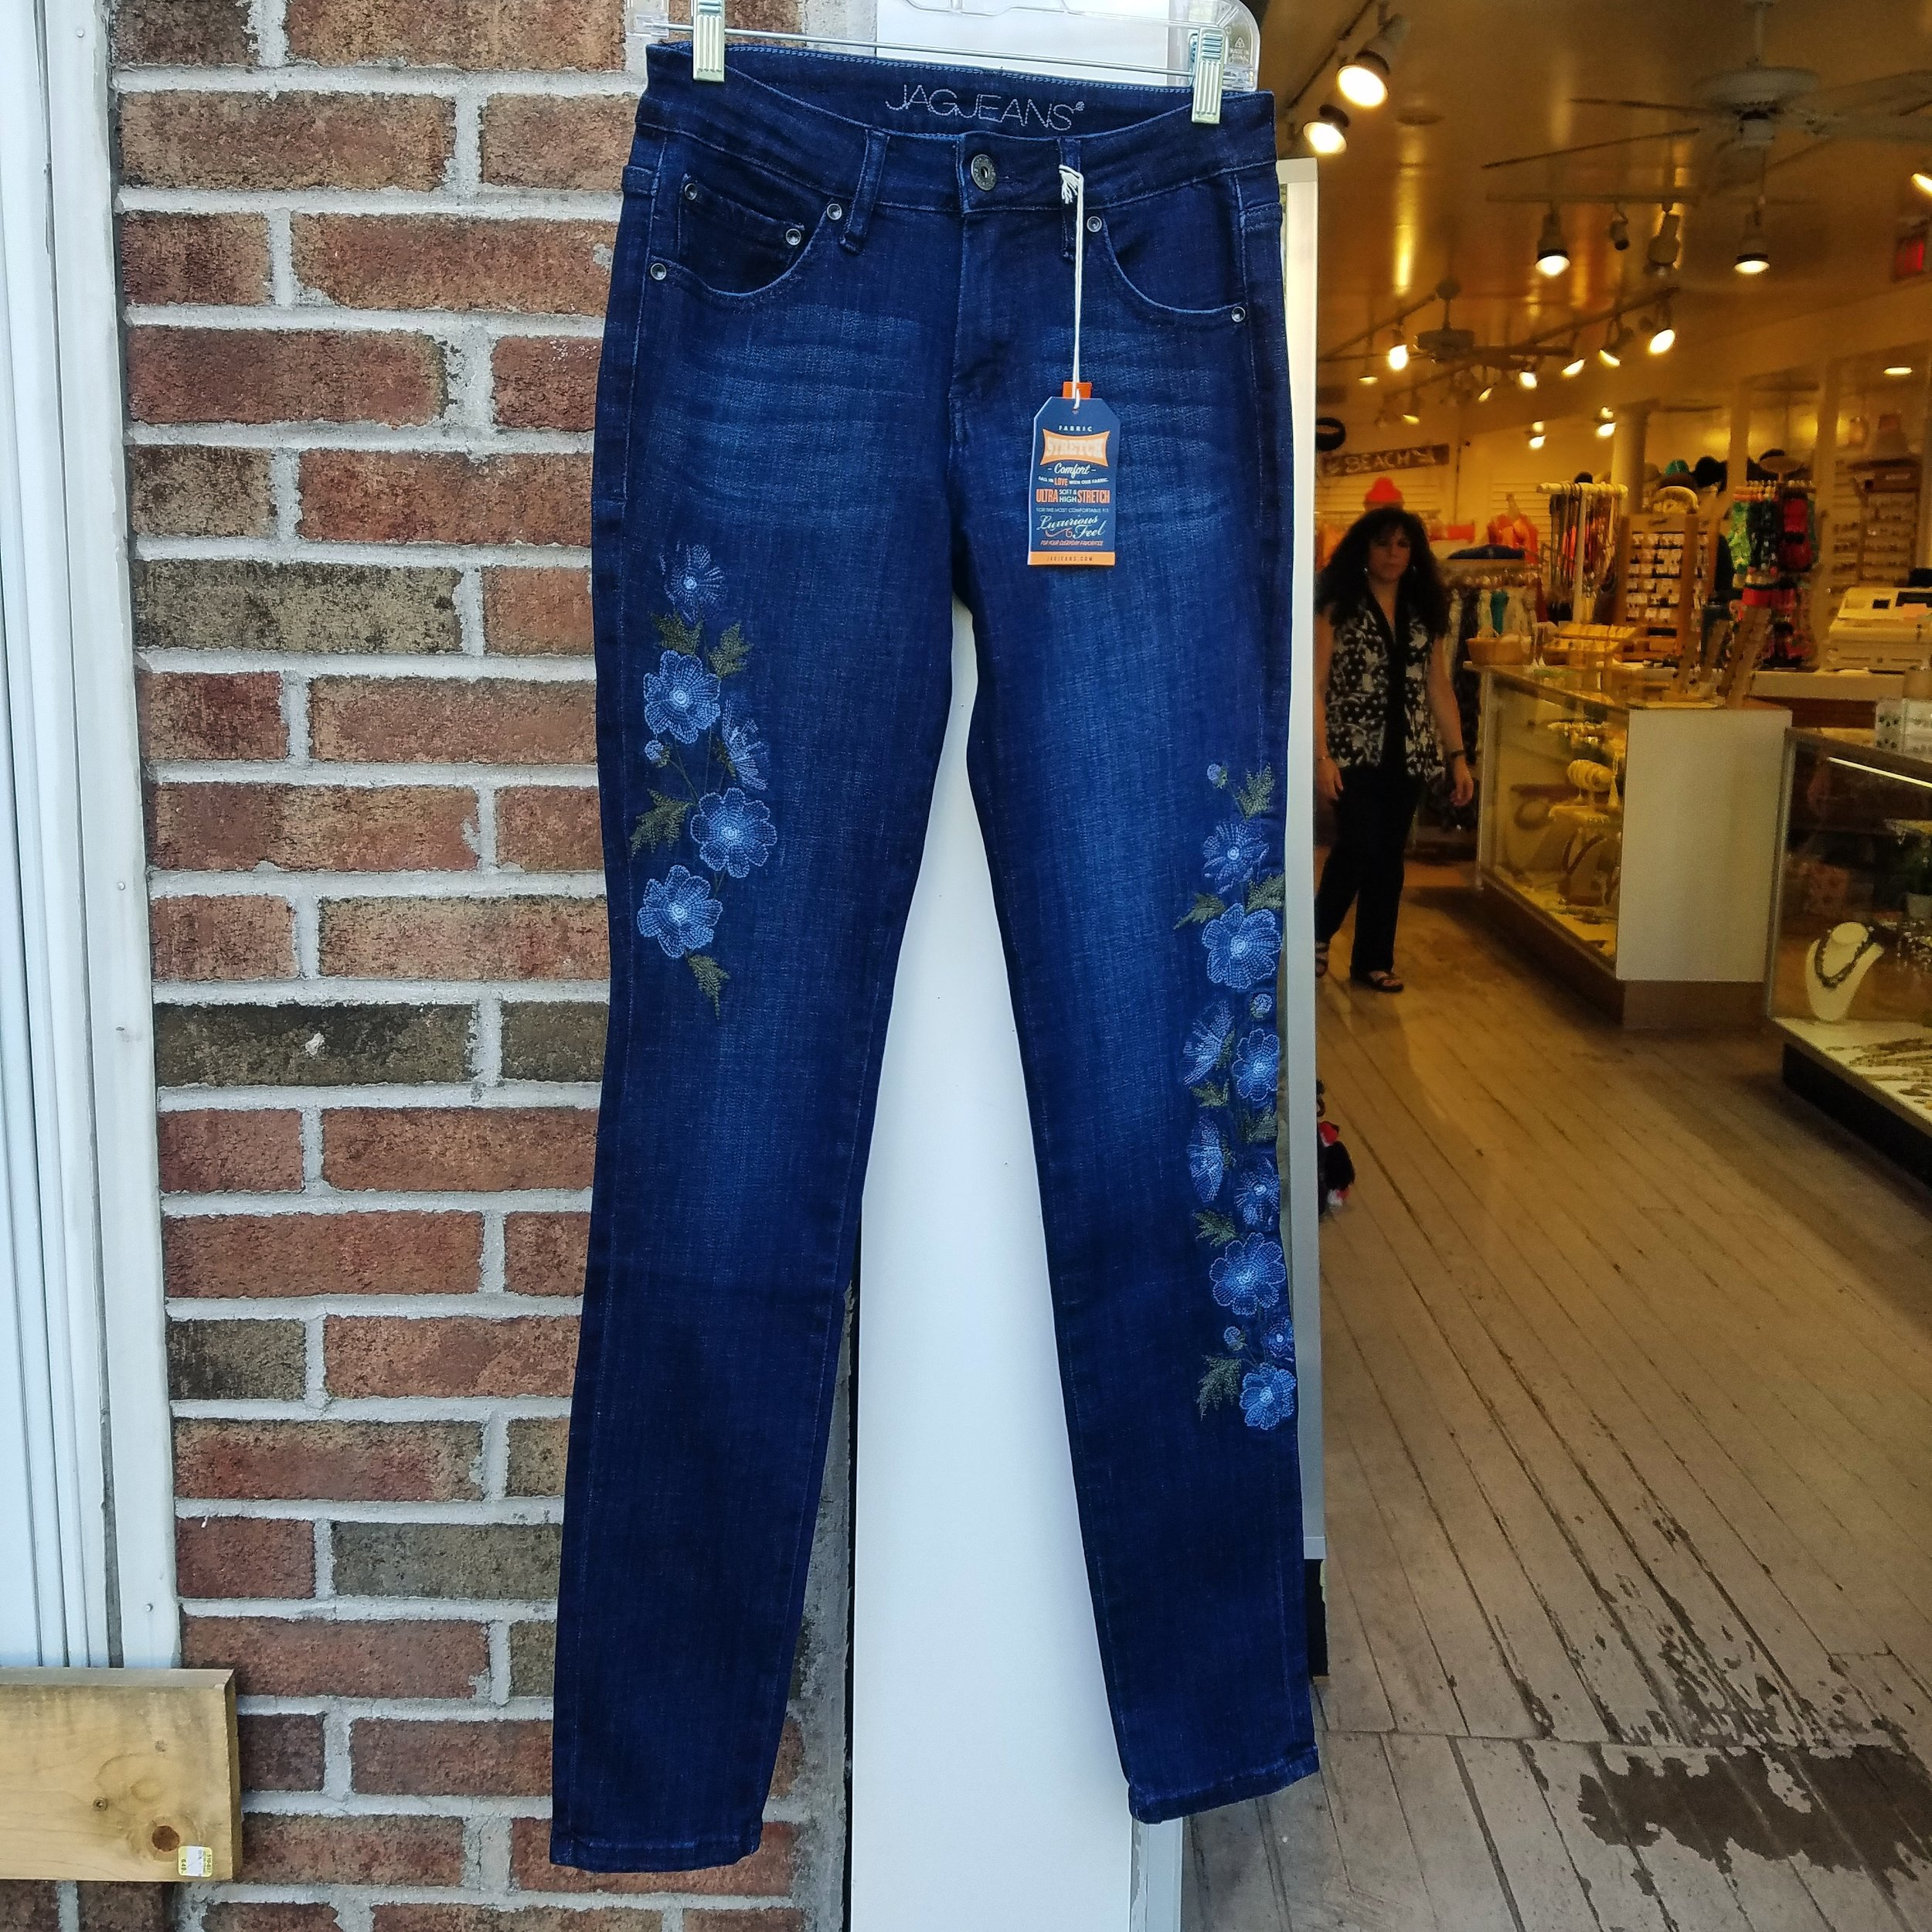 New Sheridan Skinny #jagjeans to transition into Fall!  8/17/18